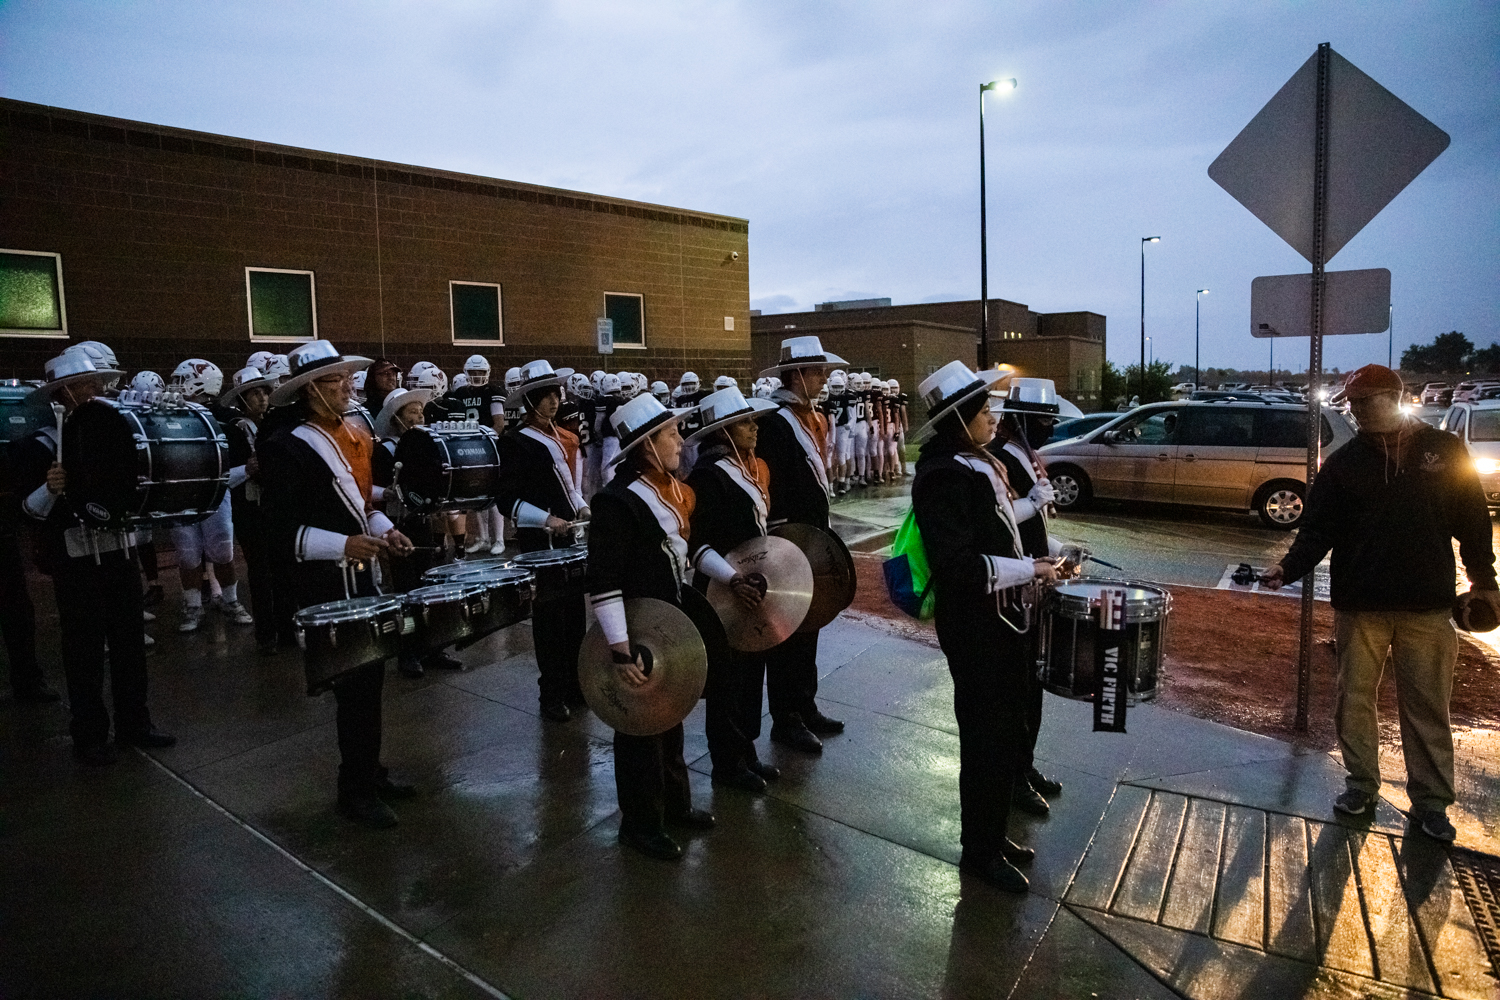 Even+through+the+rain+the+drumline+leads+the+football+team+down+to+the+field.+The+rest+of+the+band+was+not+able+to+play+due+to+the+rain+though.+The+moisture+is+terrible+for+the+instruments.